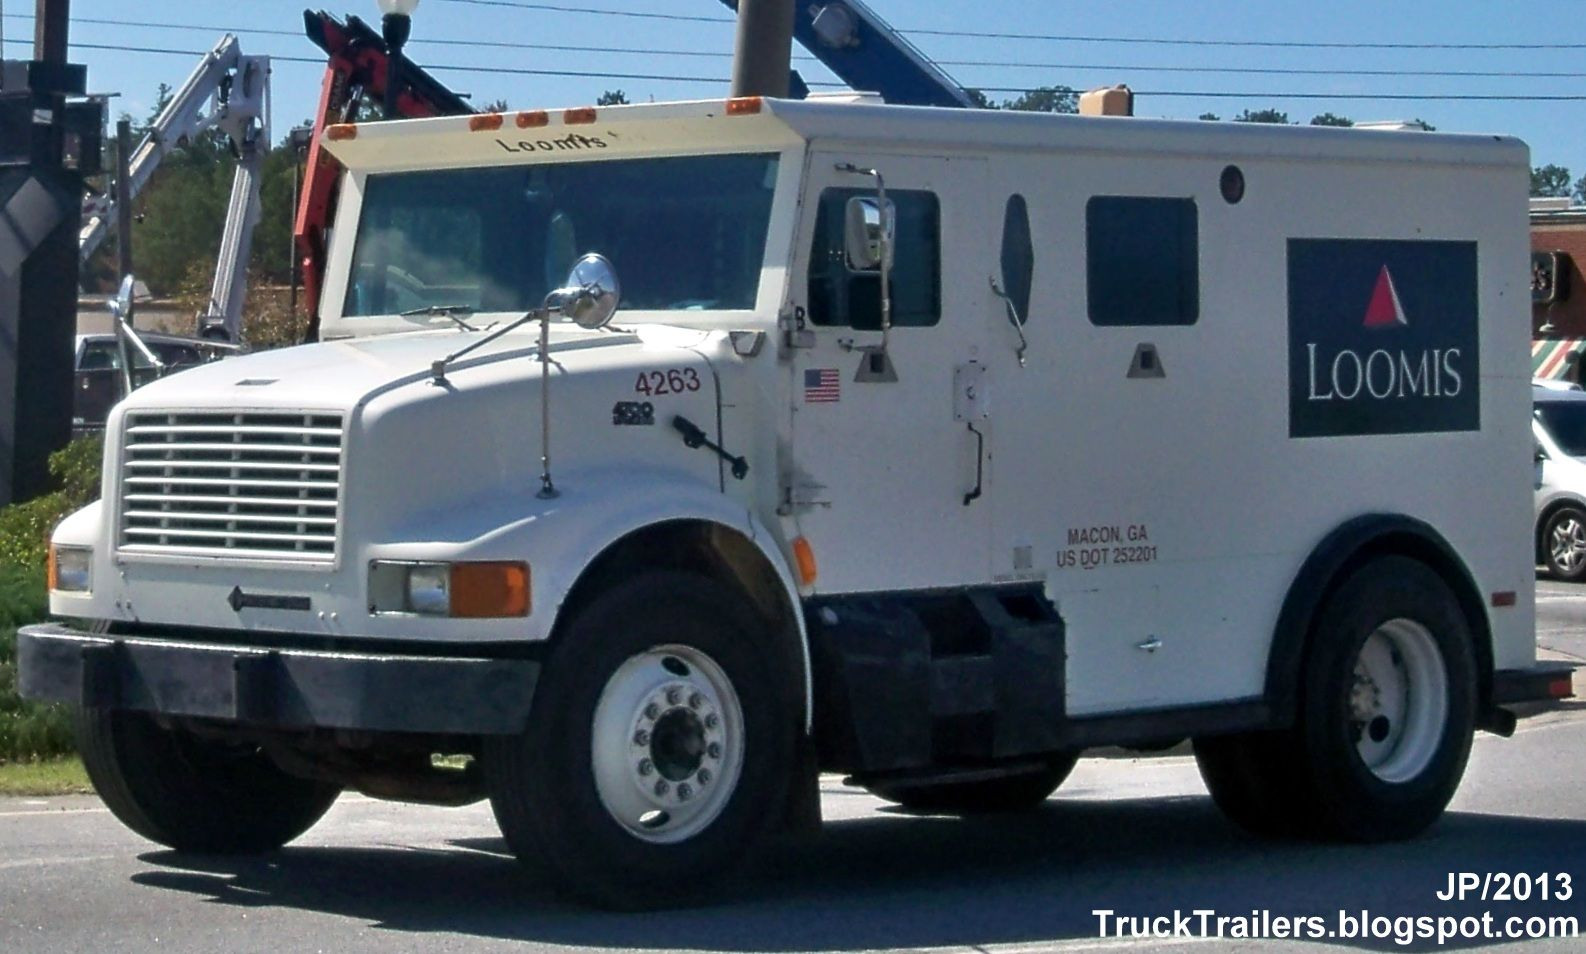 Old Armored Trucks for Sale | MACON GA. Attorney College Restaurant ...